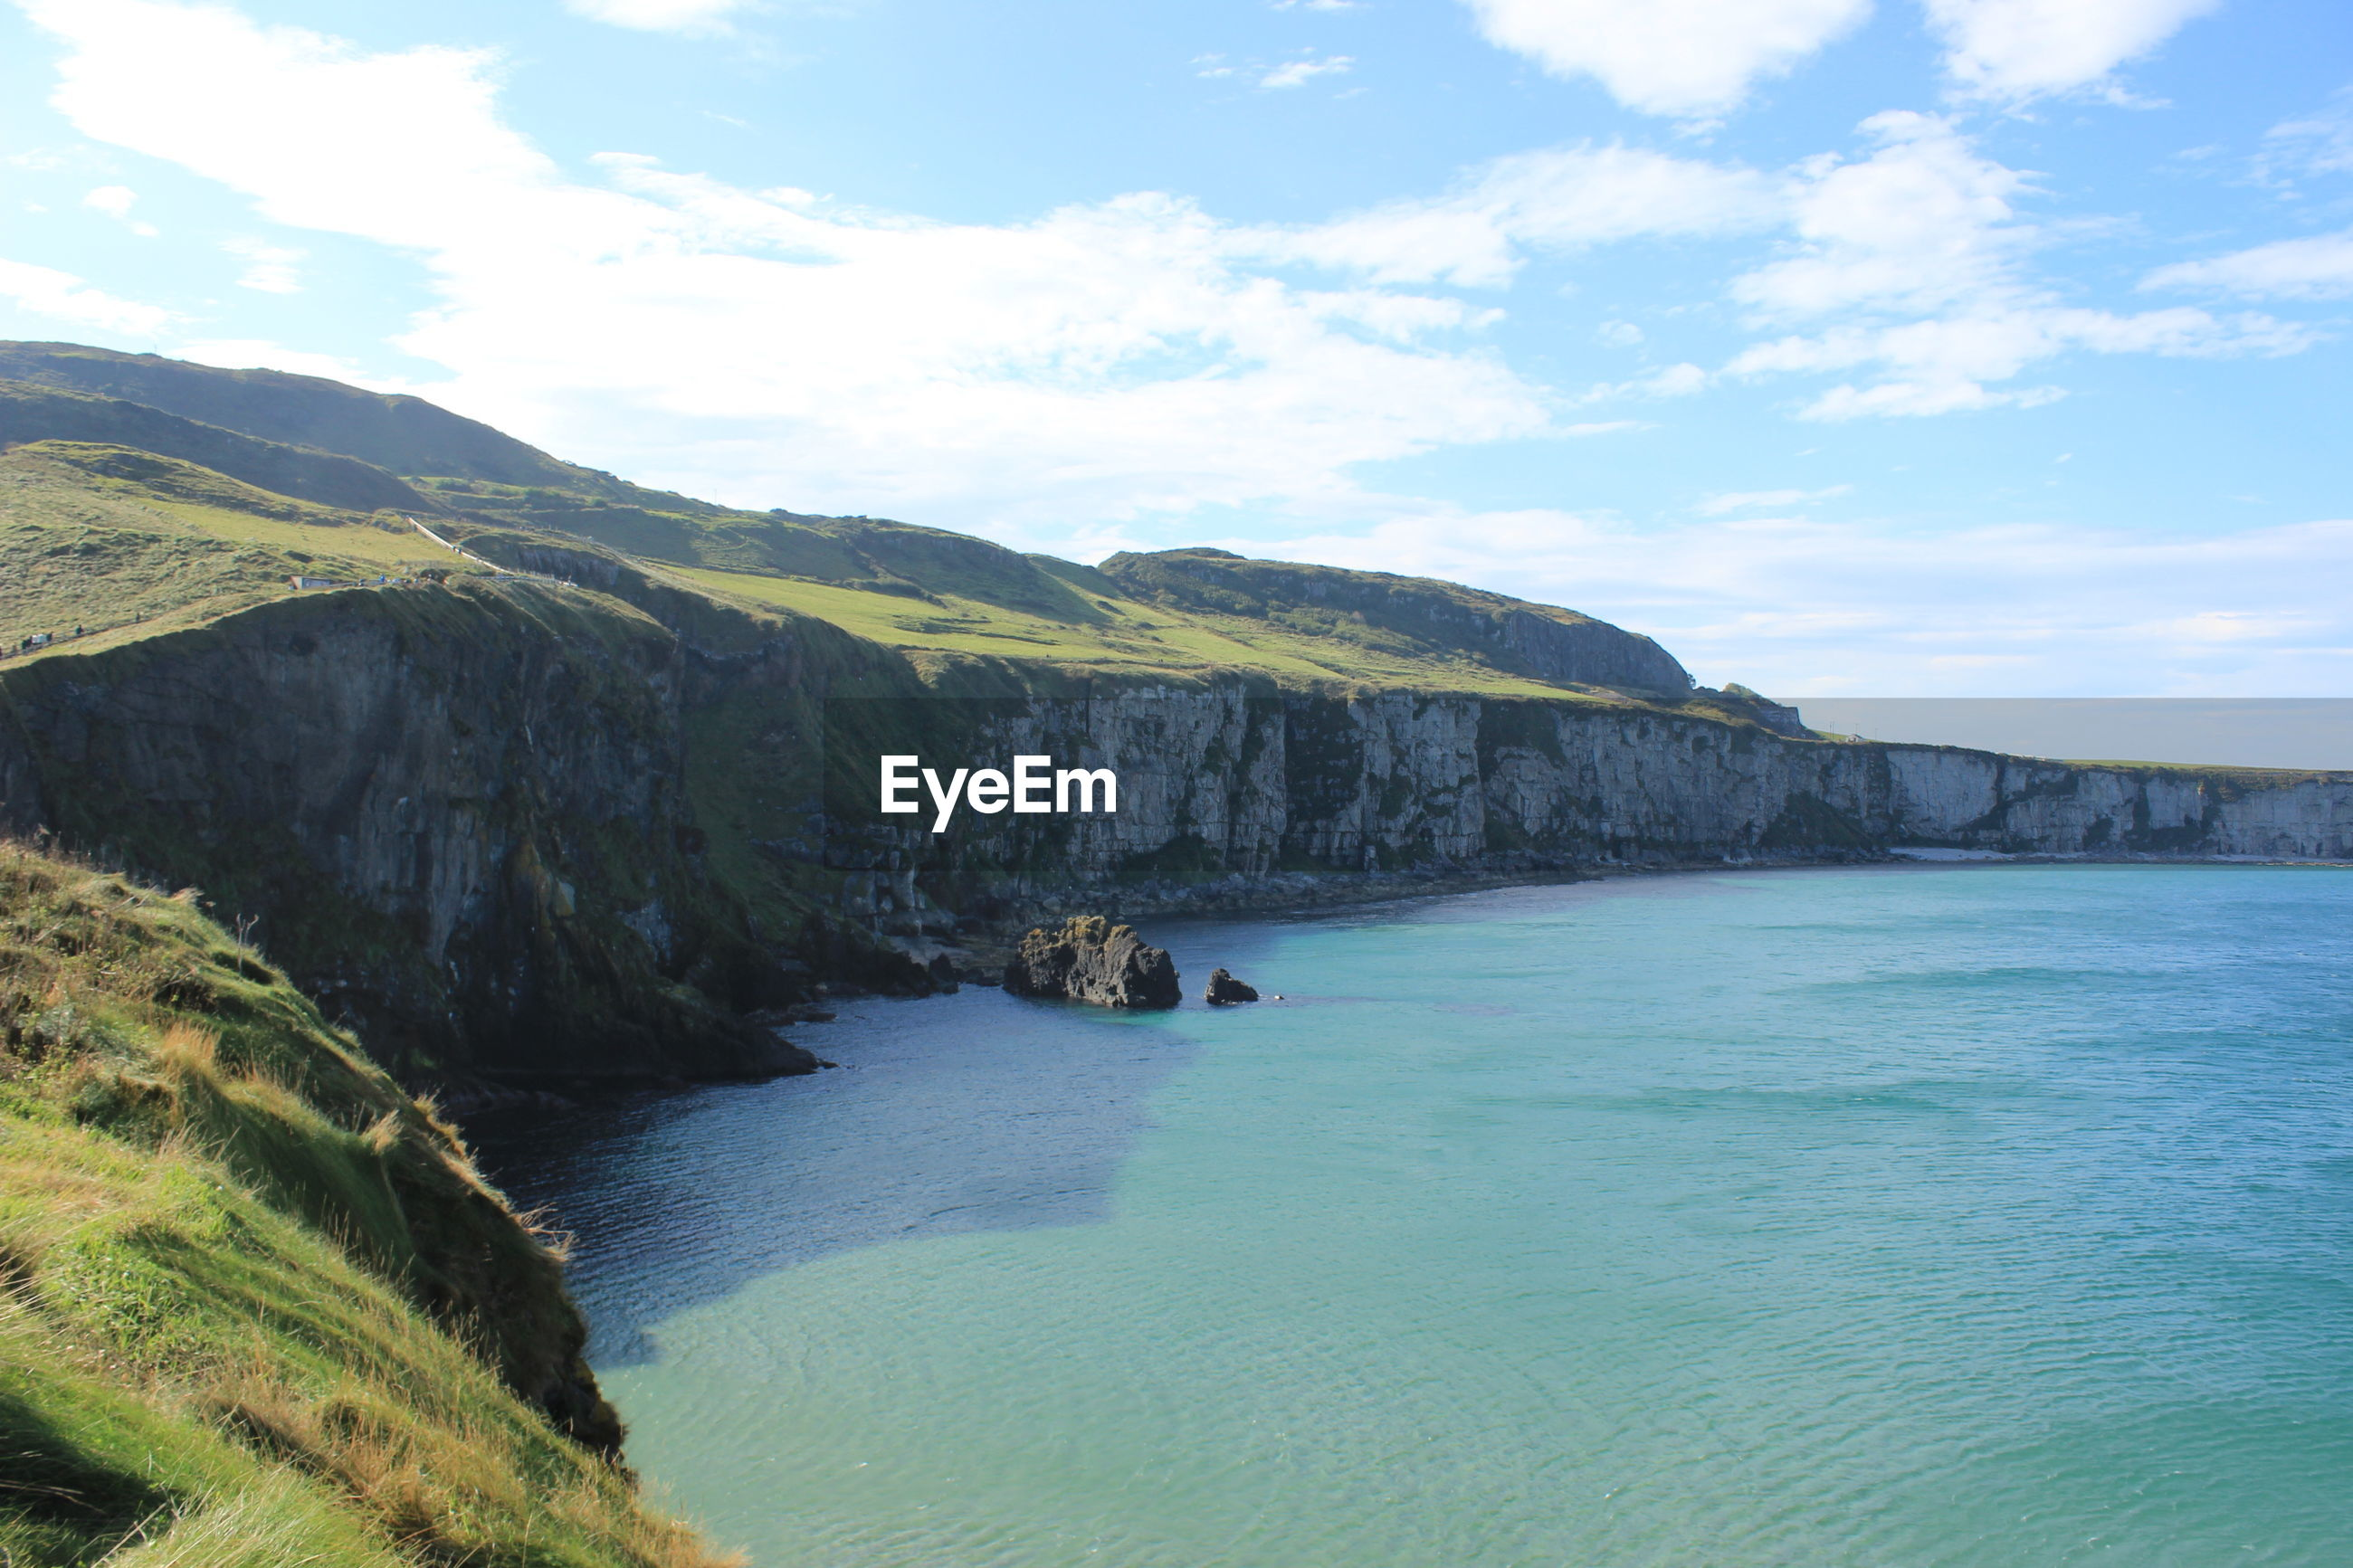 SCENIC VIEW OF SEA BY LANDSCAPE AGAINST BLUE SKY